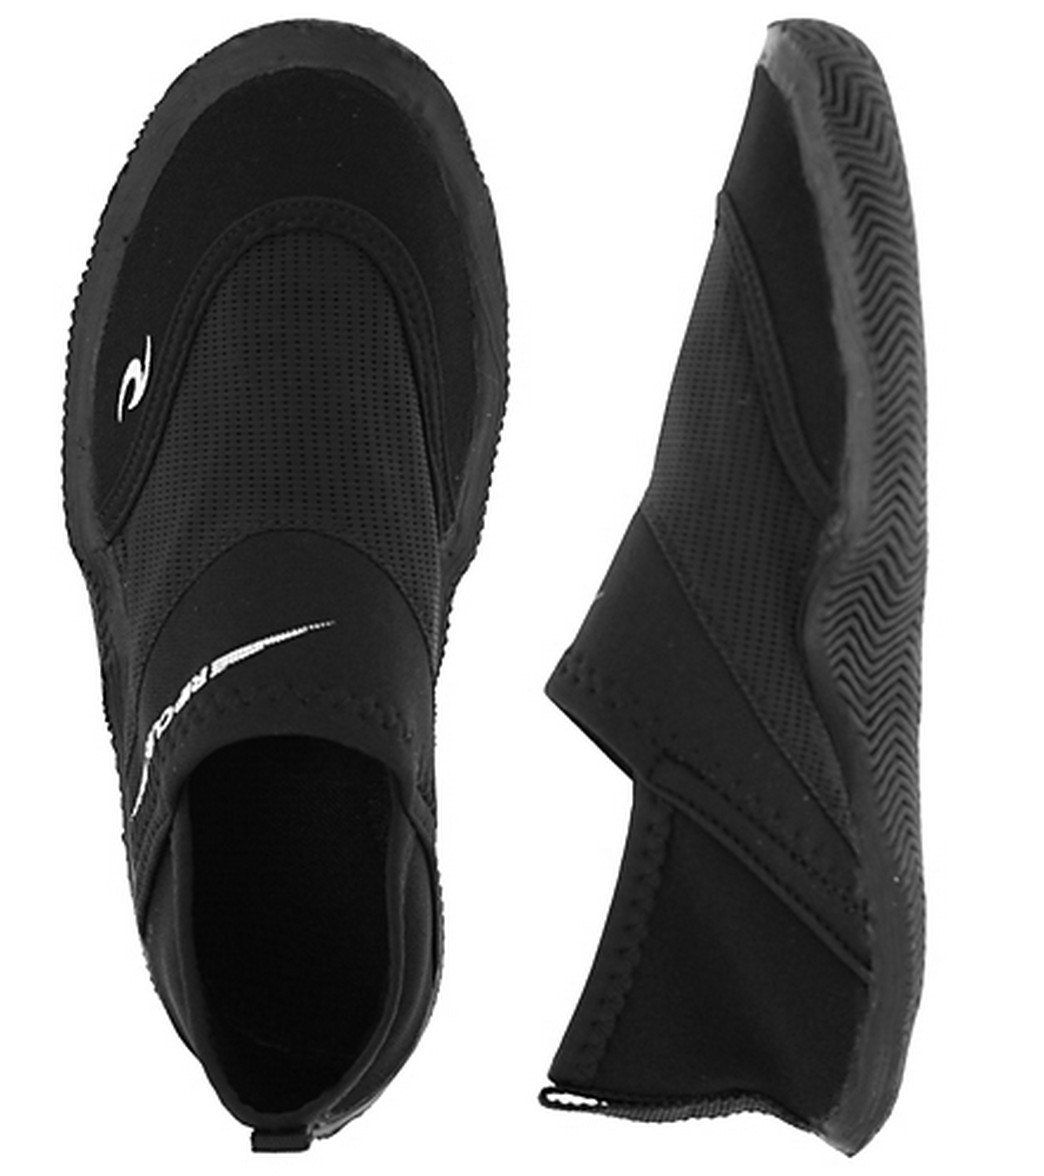 Rip Curl Kids Clic Reef Walkers At Swimoutlet